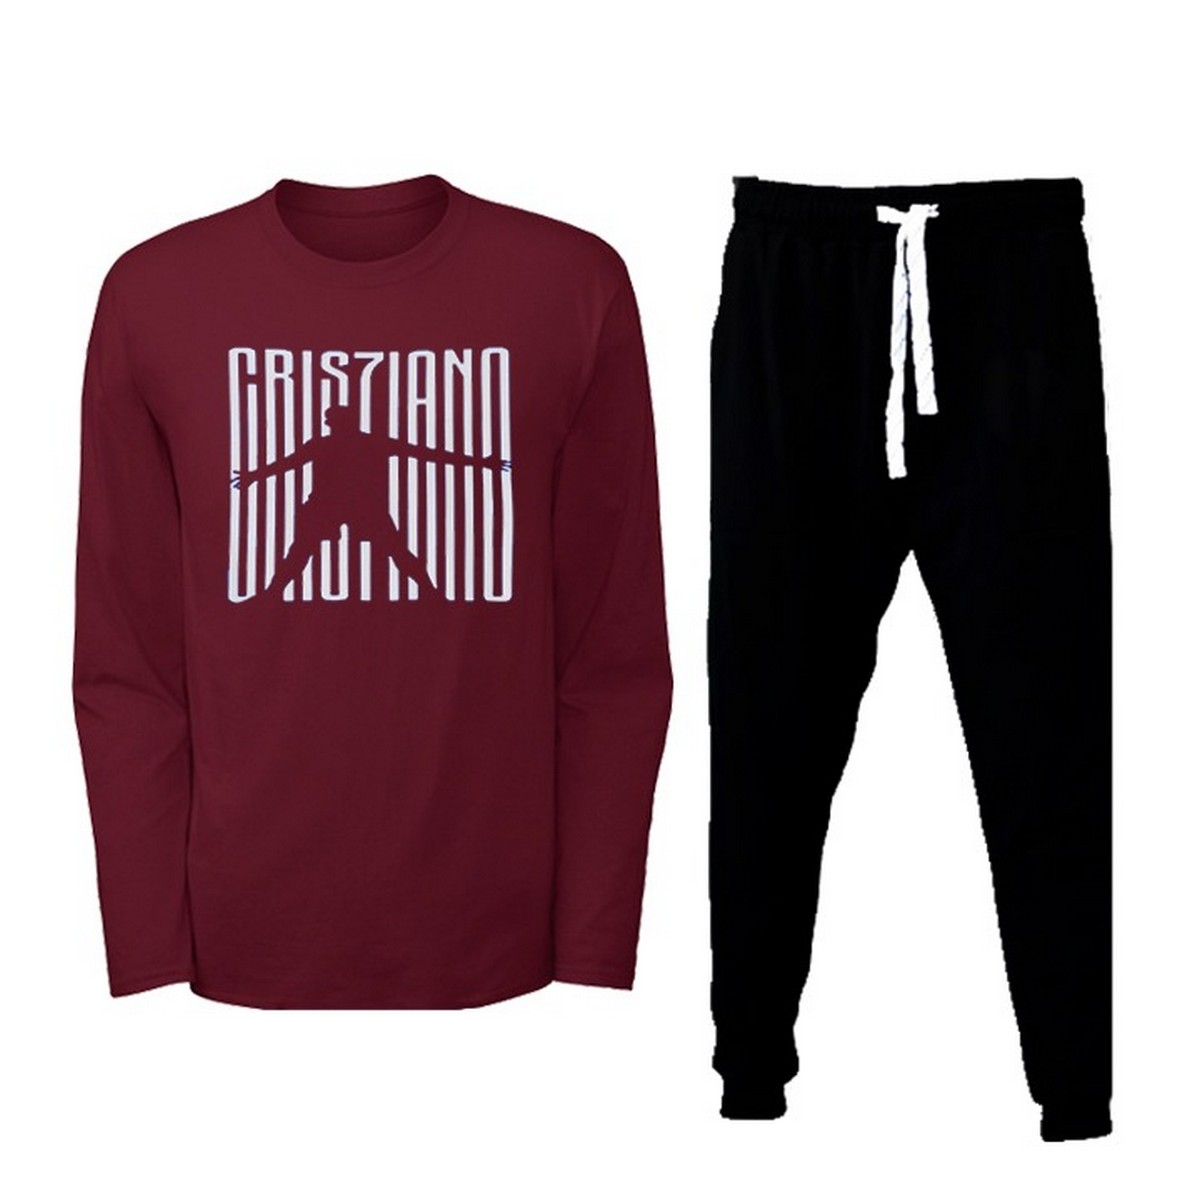 Cristiano Ronaldo Printed Long Sleeves Crew Neck T Shirt With Pockets Trouser Pack Of 2 Summer Wear For Men